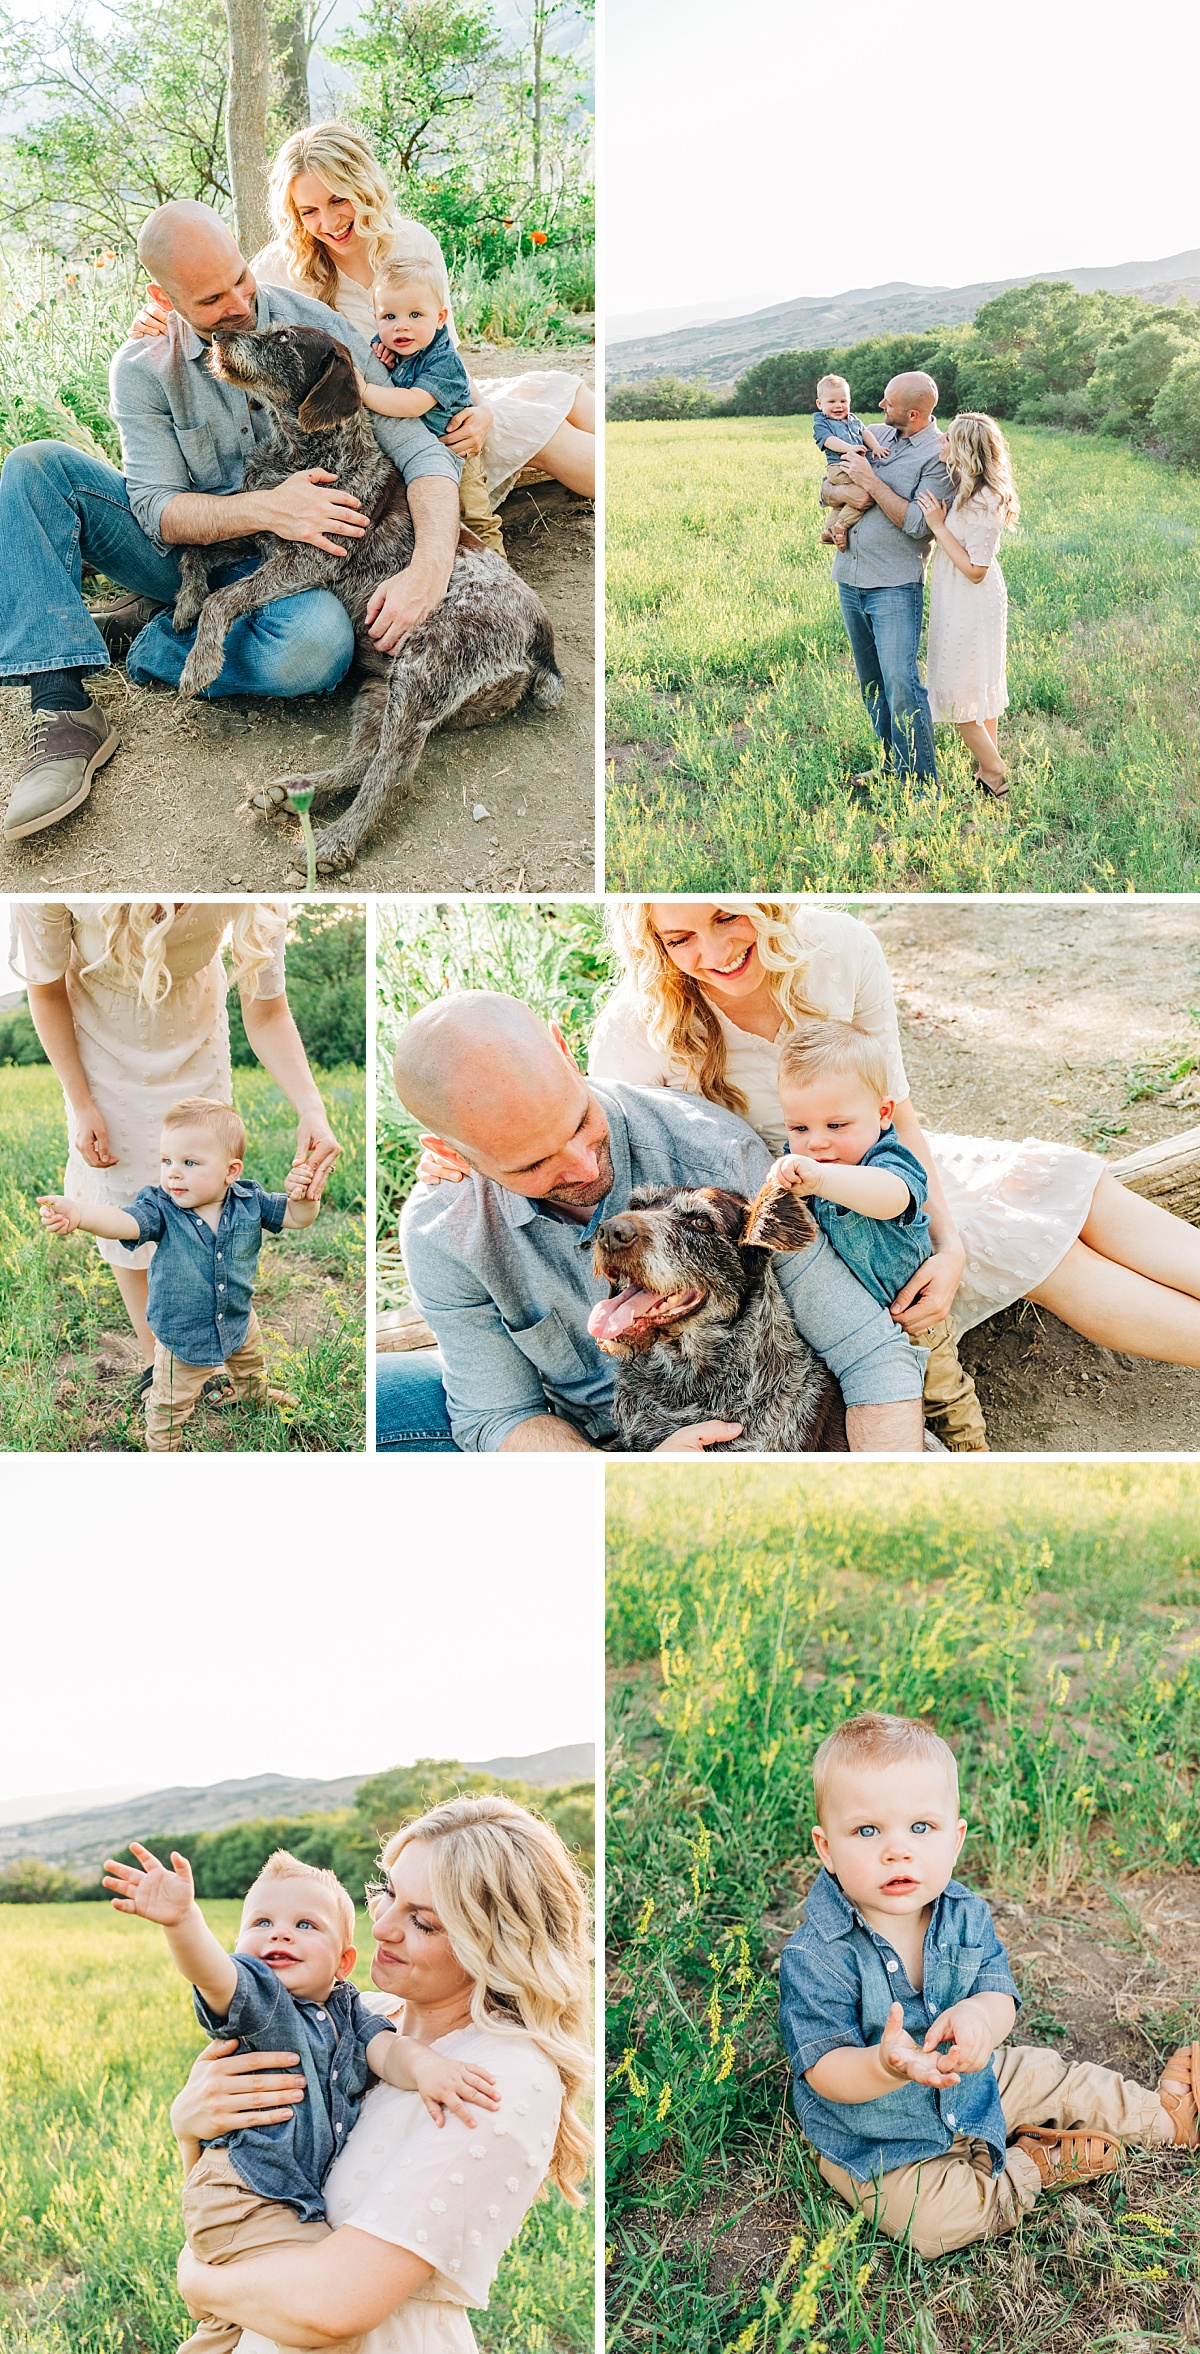 Family Photos in a Field of Wildflowers